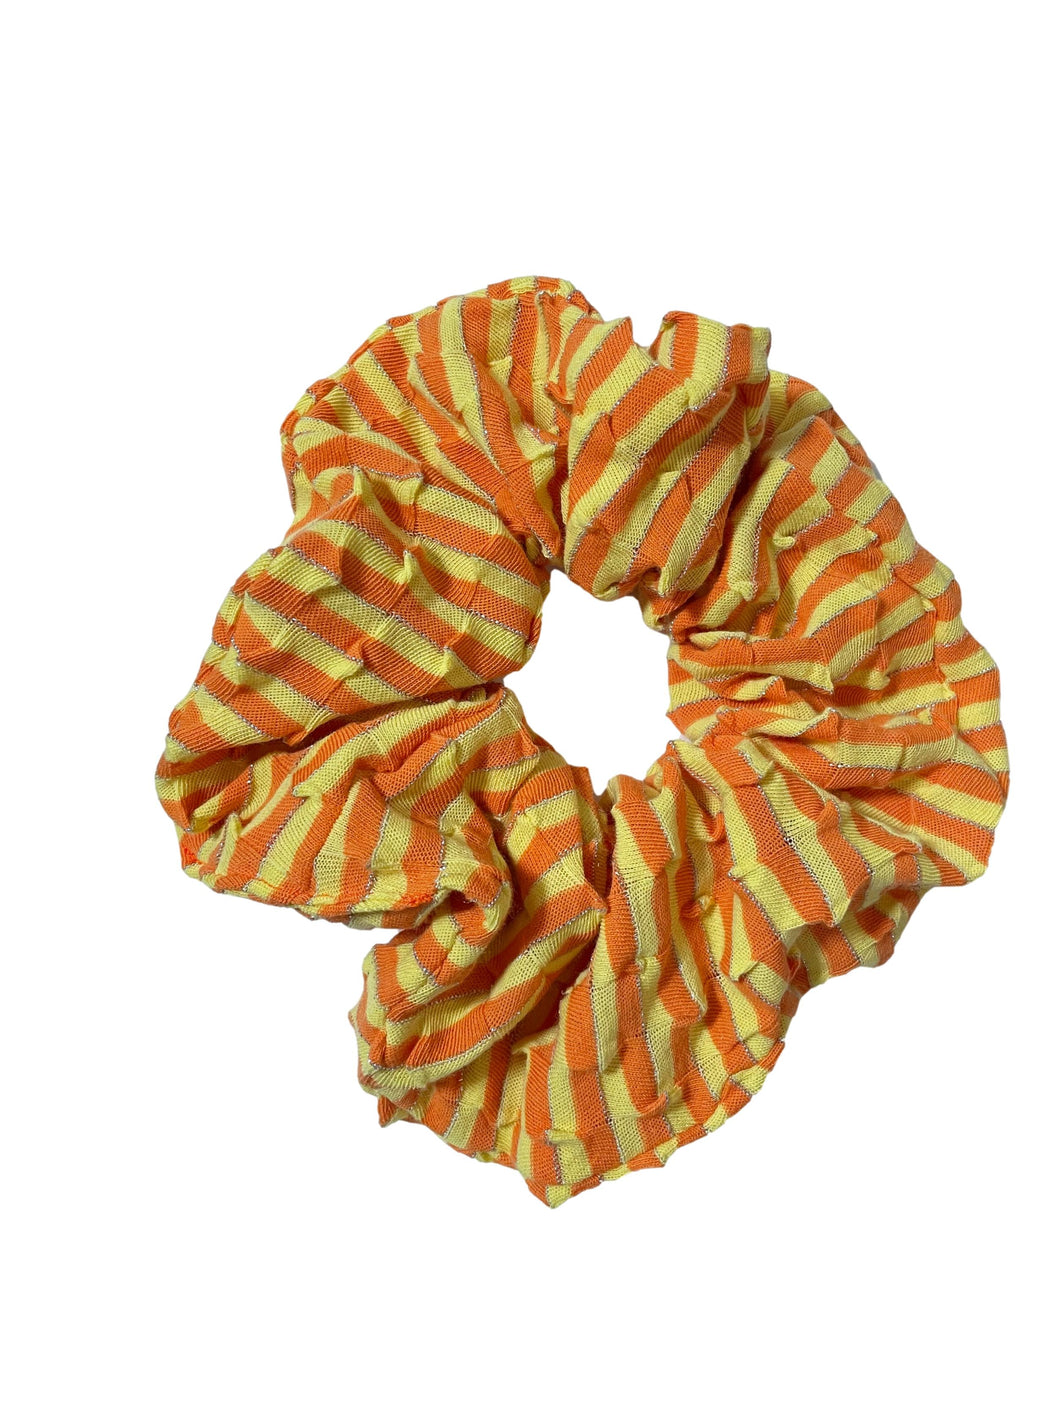 Jumbo Retro Yellow & Orange Scrunchie